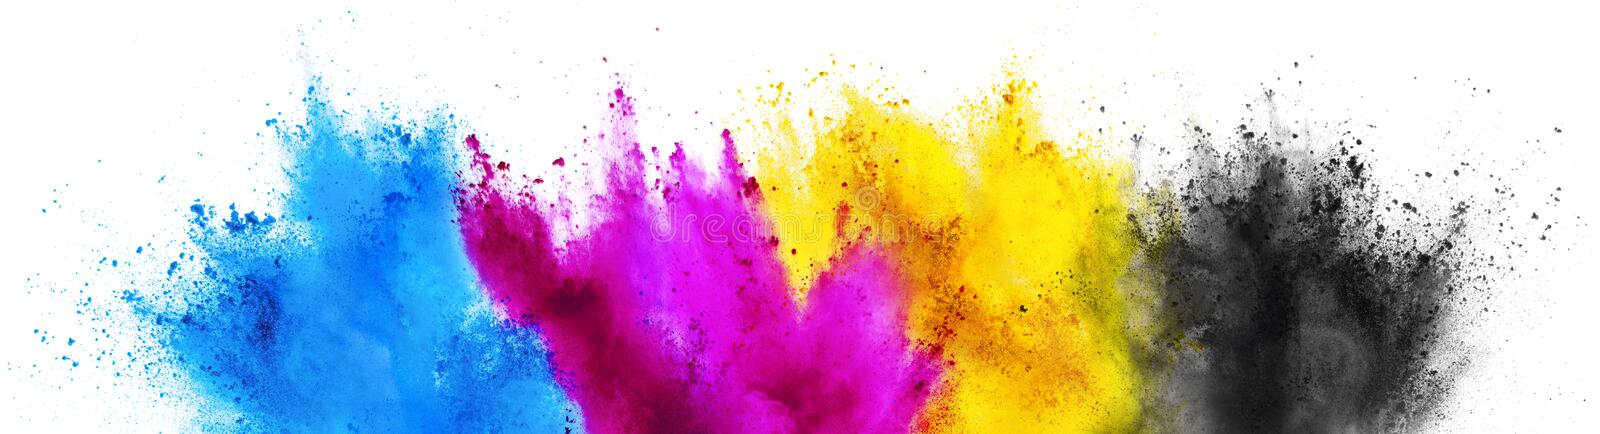 Colorful CMYK cyan magenta yellow key holi paint color powder explosion print concept isolated white background stock photo